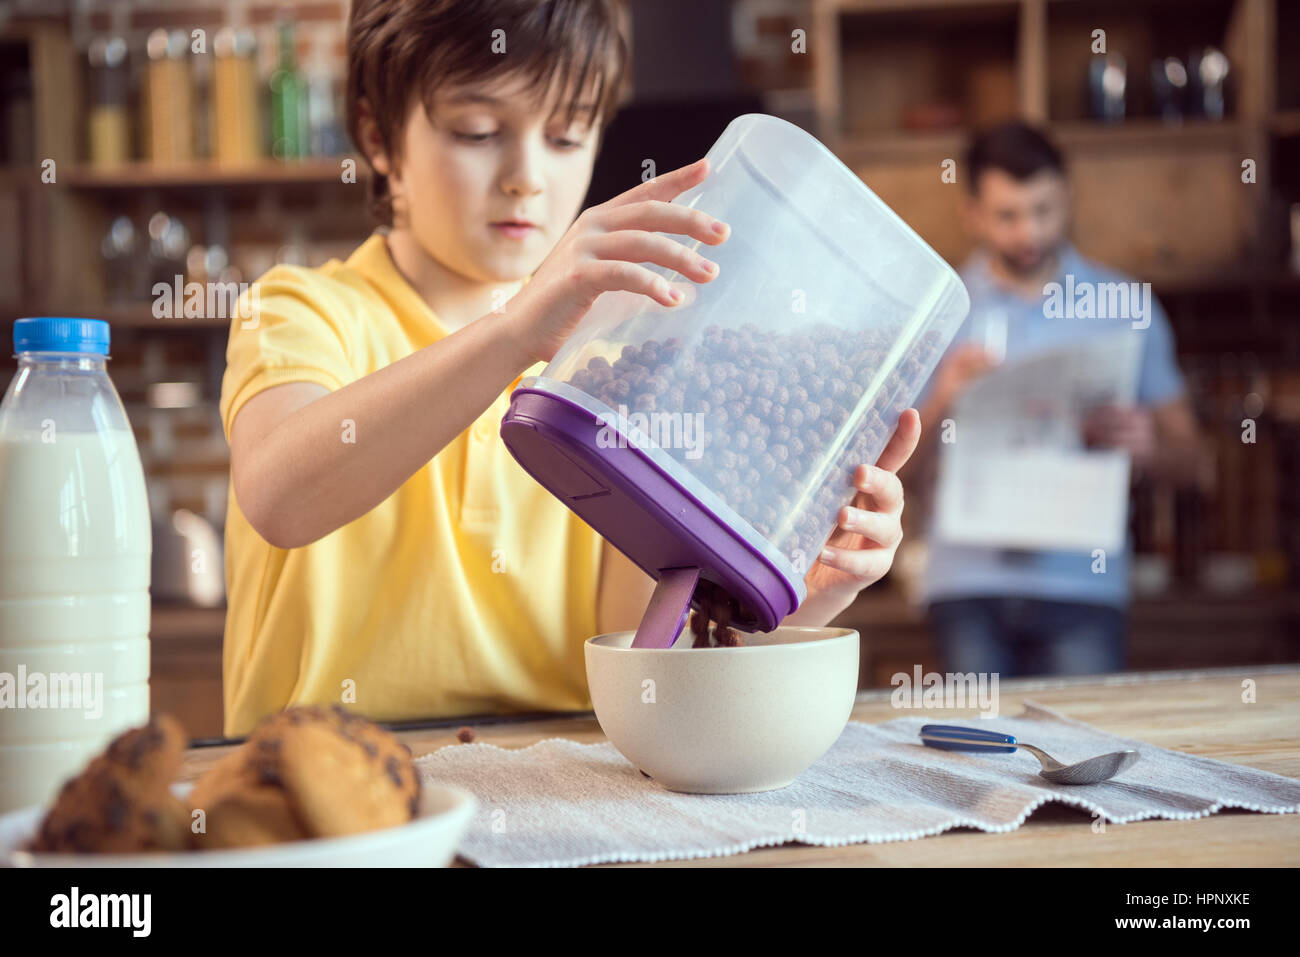 little boy holding chocolate balls for breakfast - Stock Image